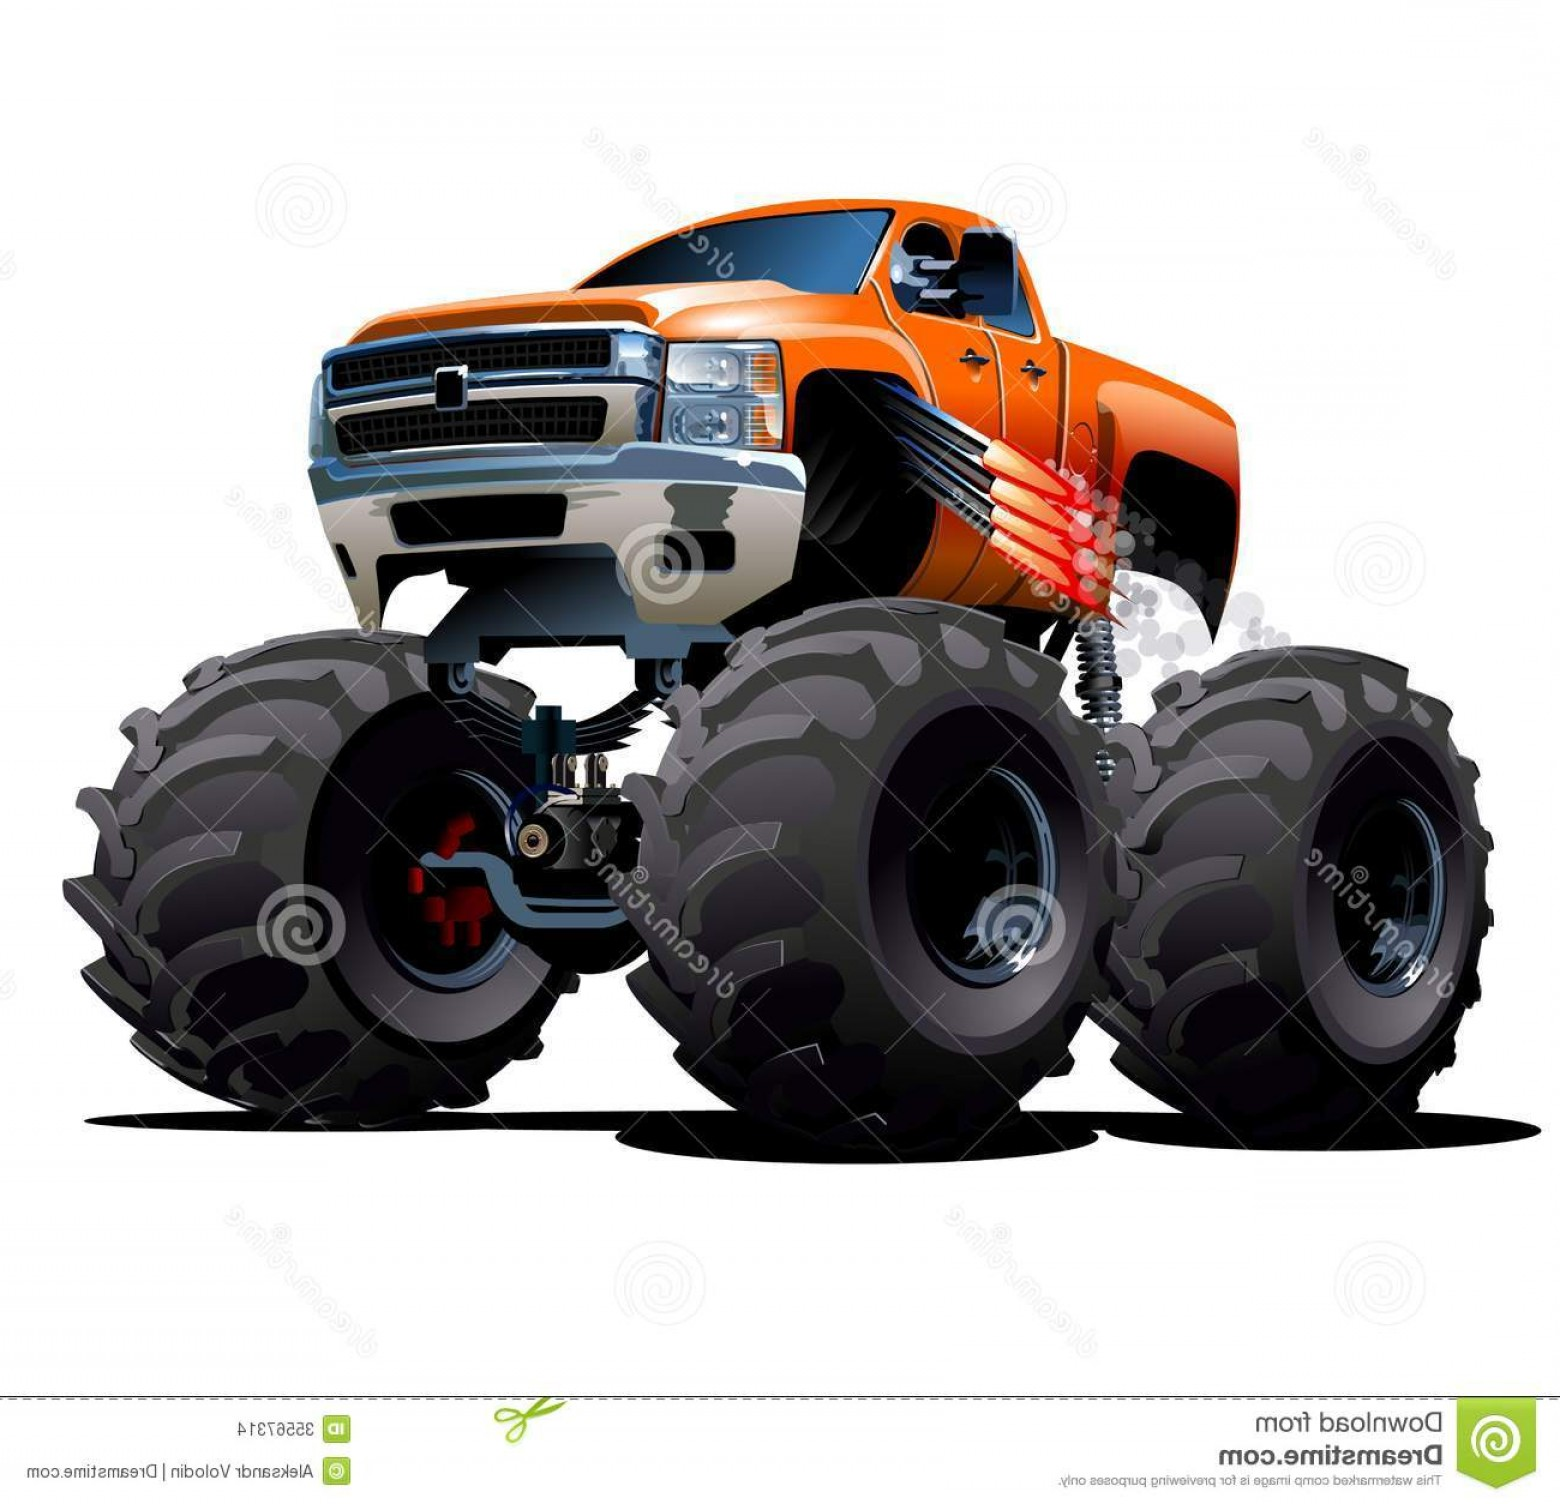 Hot Wheels Vector Art: Stock Images Cartoon Monster Truck Vector Available Eps Vector Format Separated Groups Layers Easy Edit Image